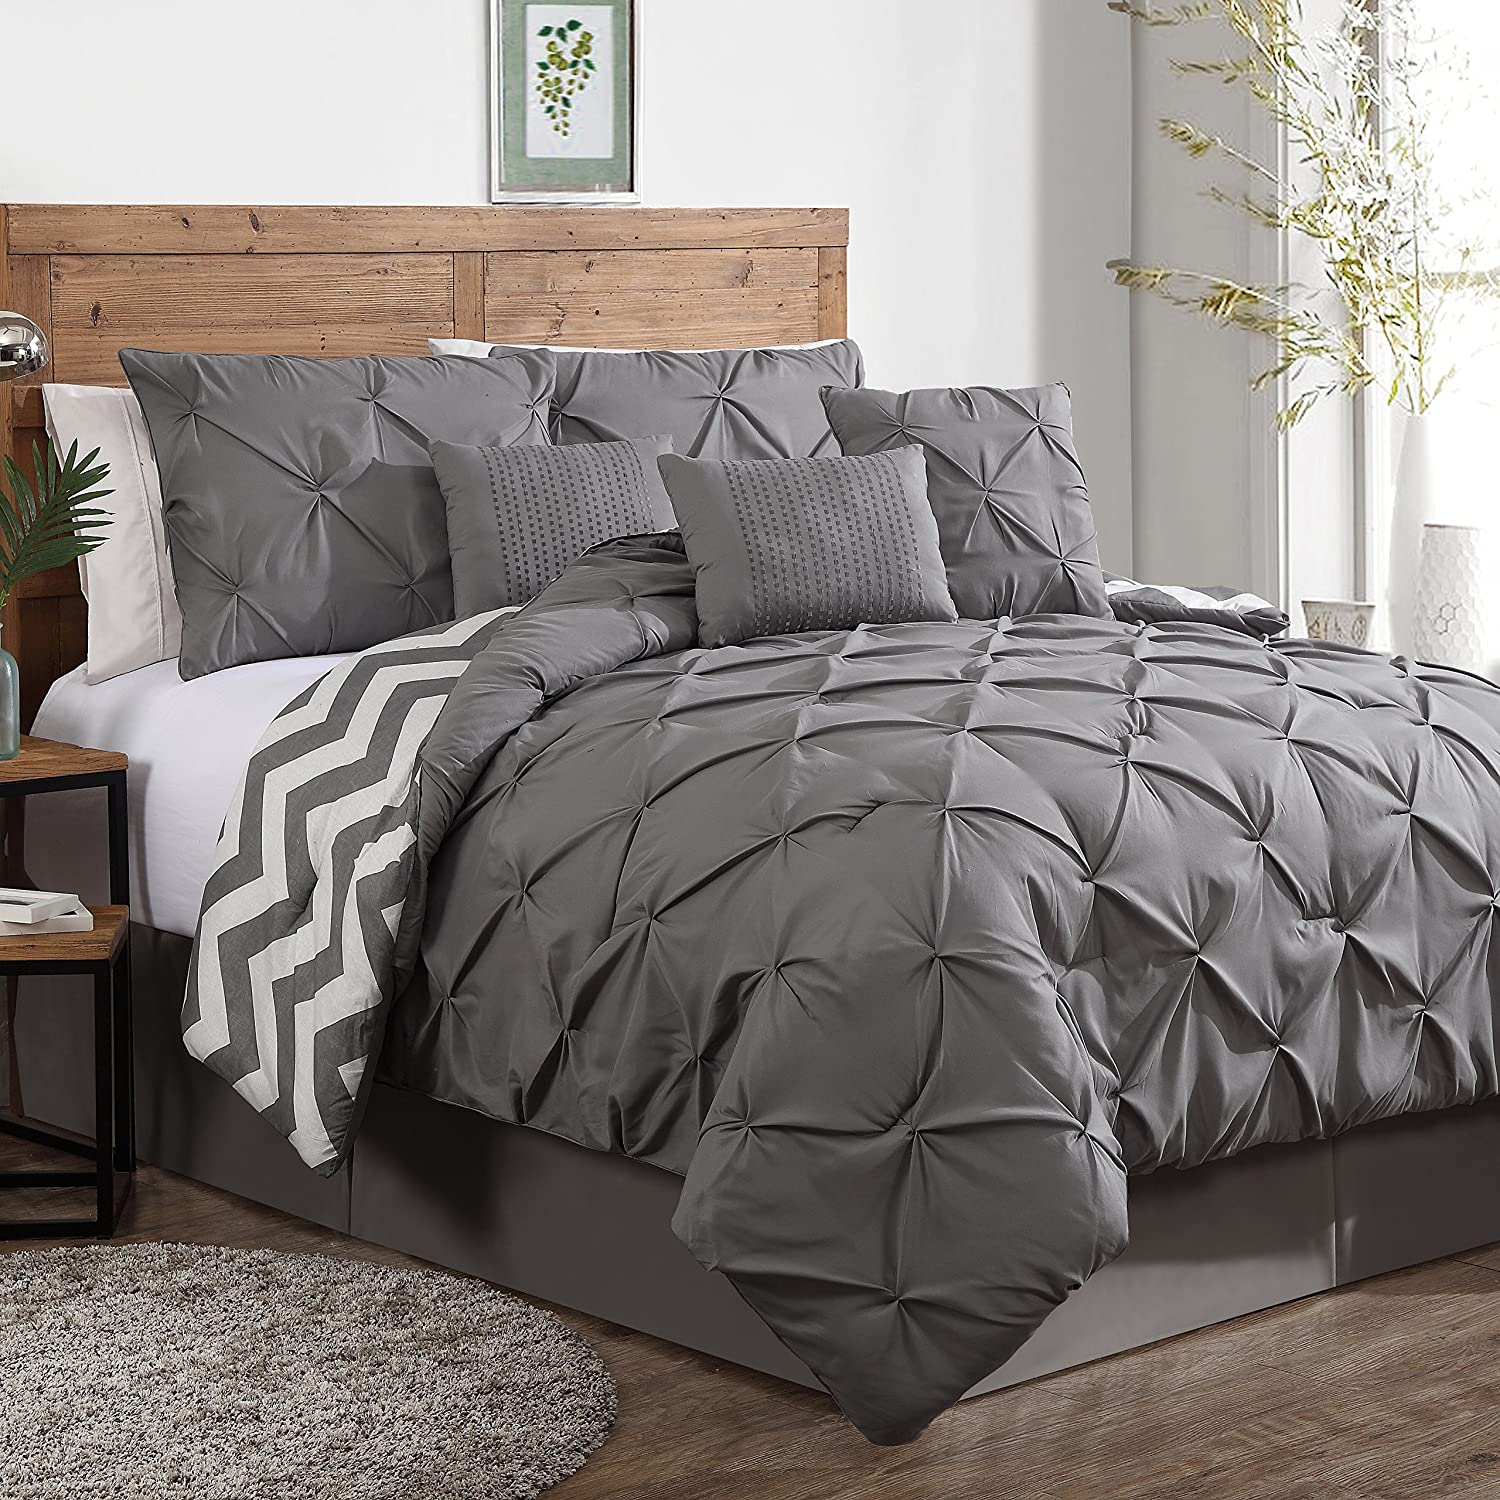 grey ecrins trendy dark comforter nice image queen lodge of colored set